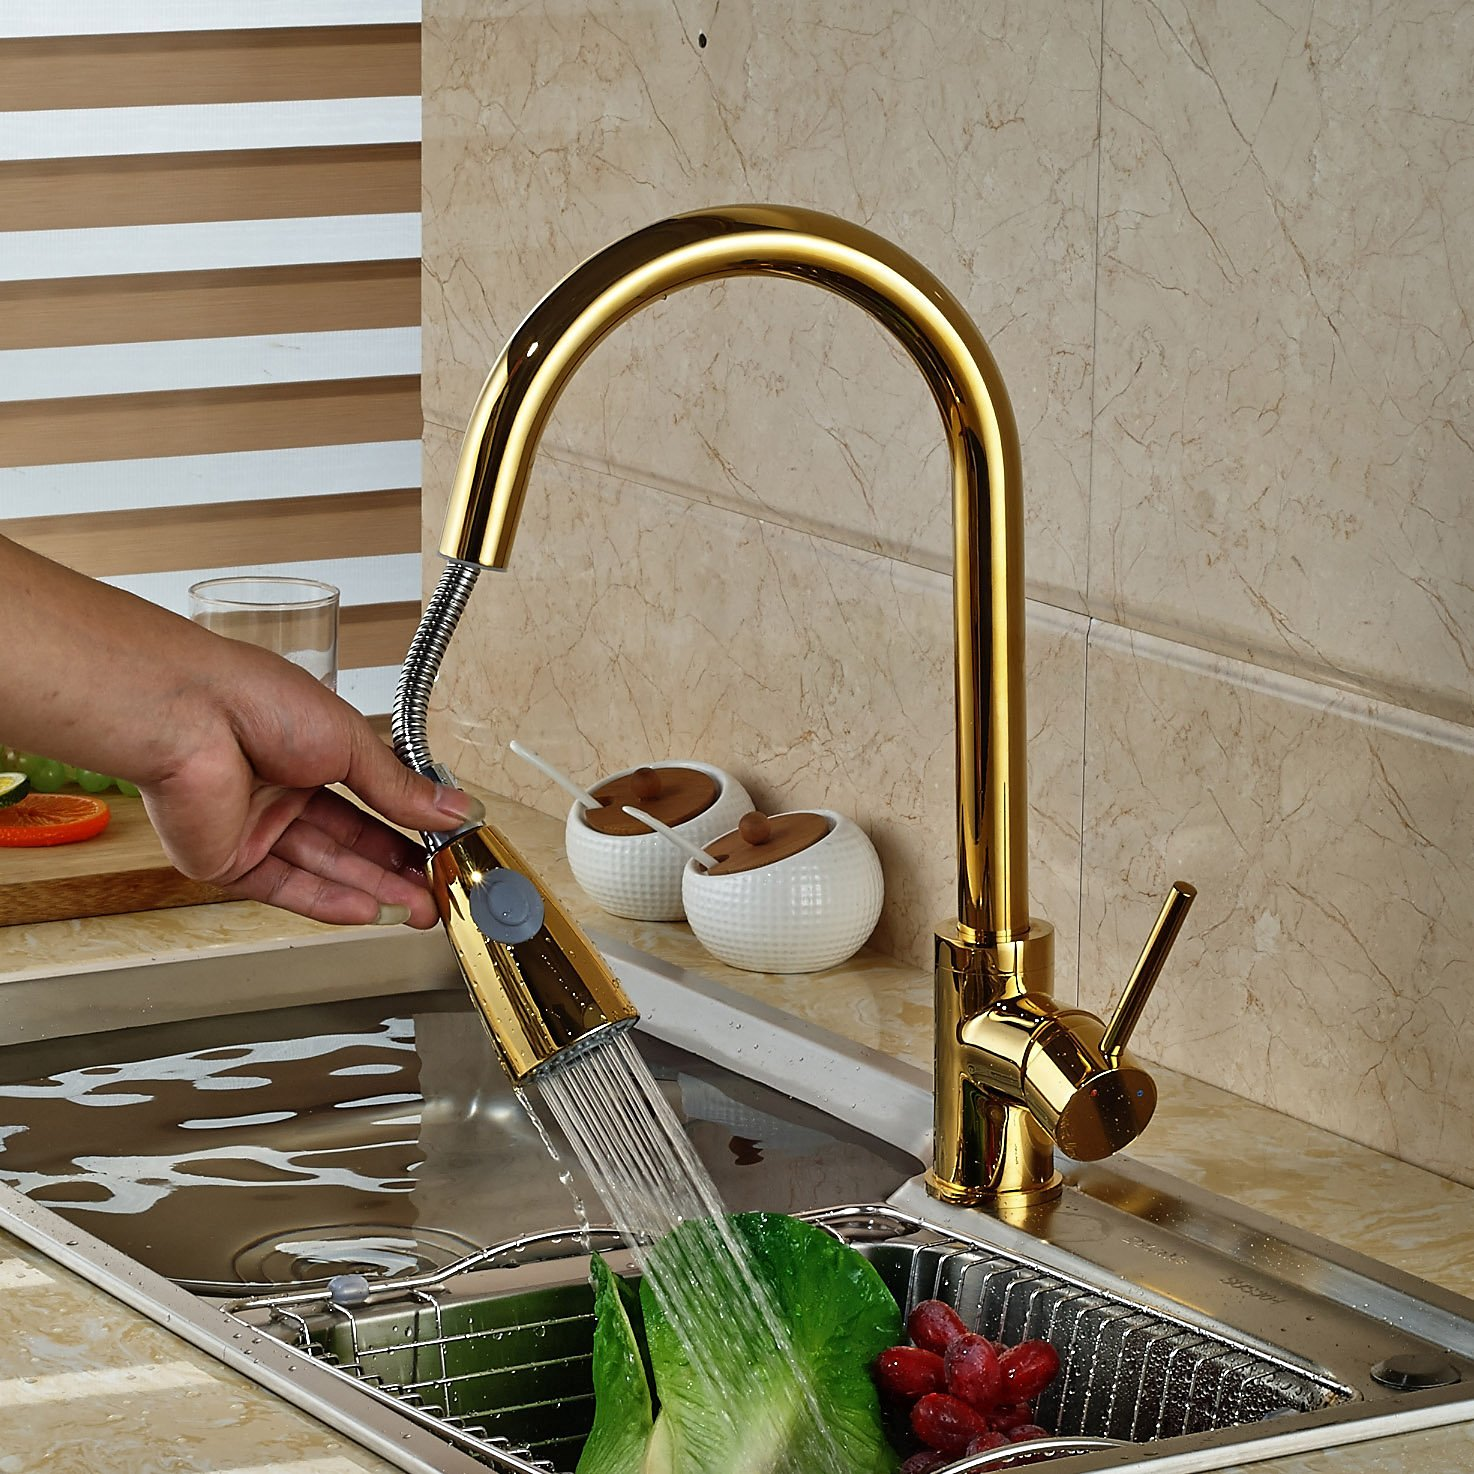 Kes Kitchen Faucet Installation Instructions